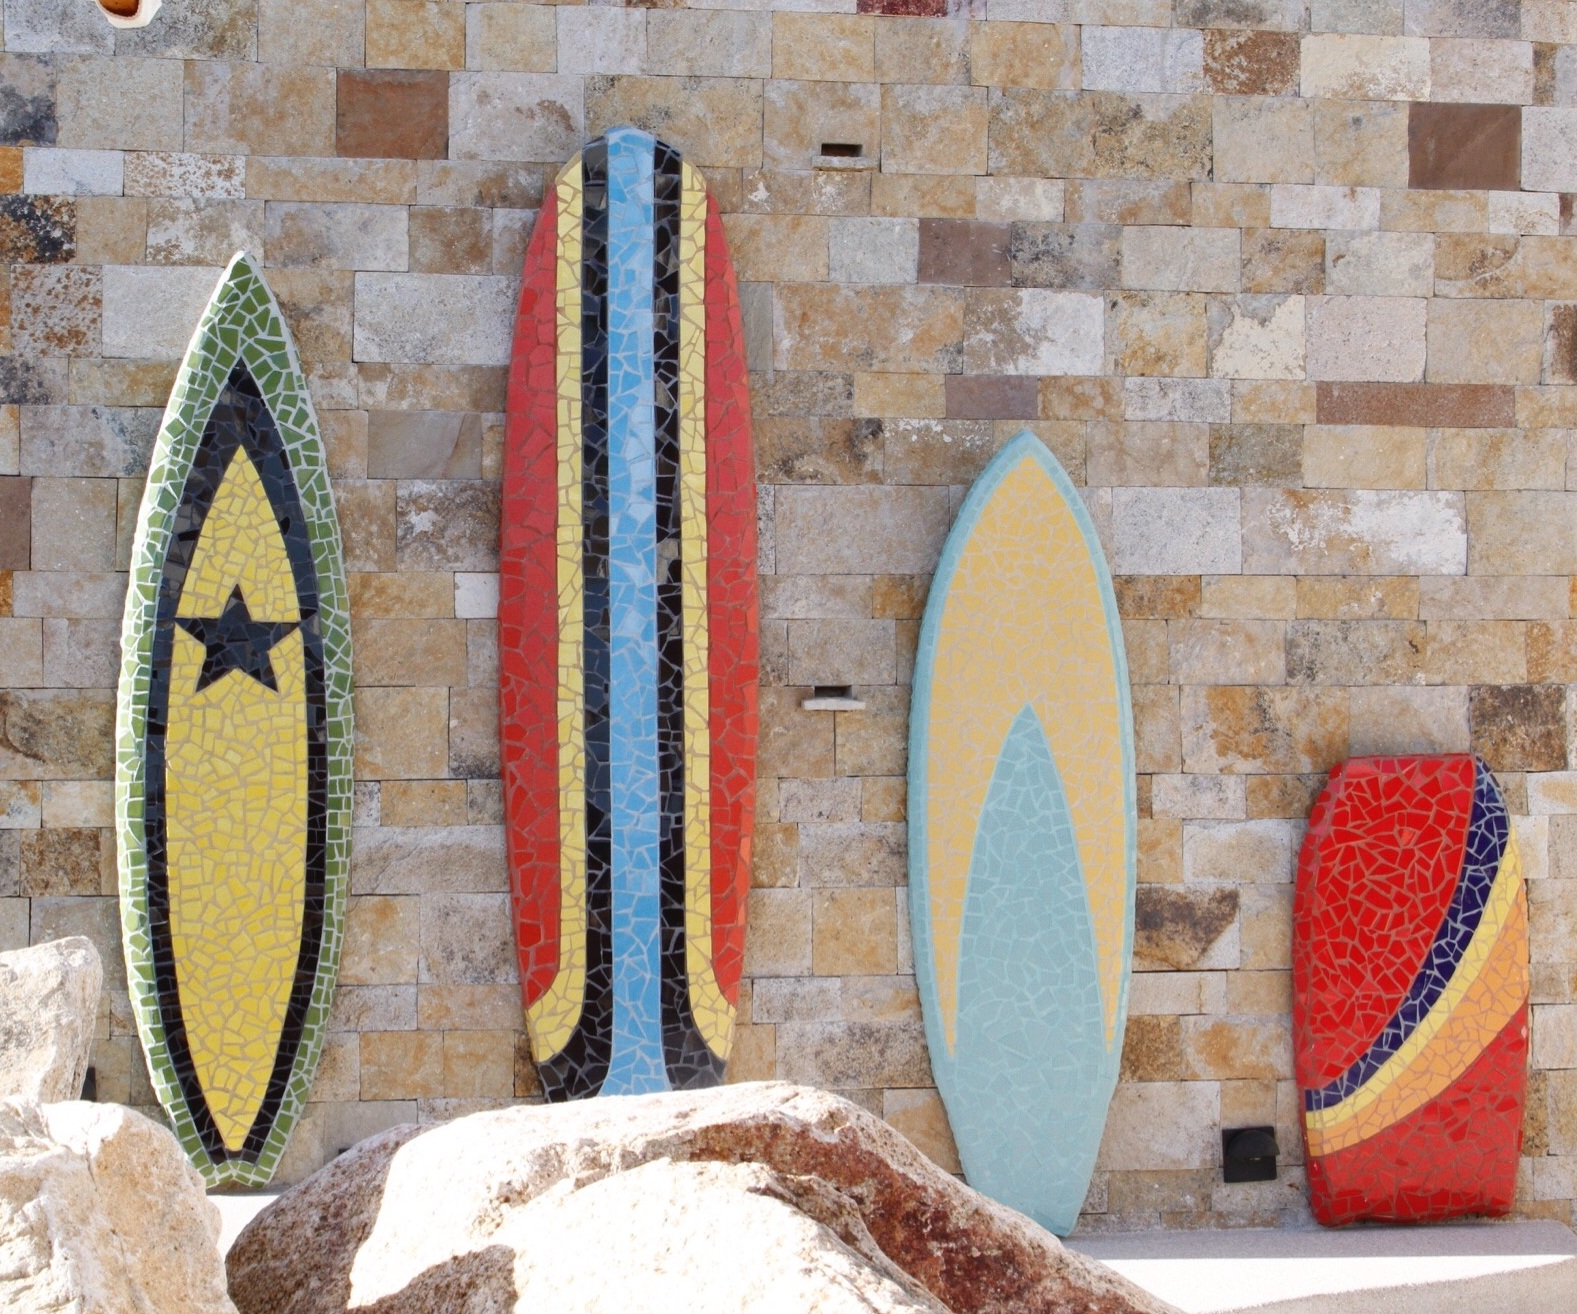 Starting in 2016,  Chileno Bay Resorts and Residencies , in San Jose del Cabo, B.C.S, MX, commissioned mosaic surfboards for their properties. To date I have created over 70 unique surfboard designs and mosaic murals for their various villas at our  Todos Artes Studios .